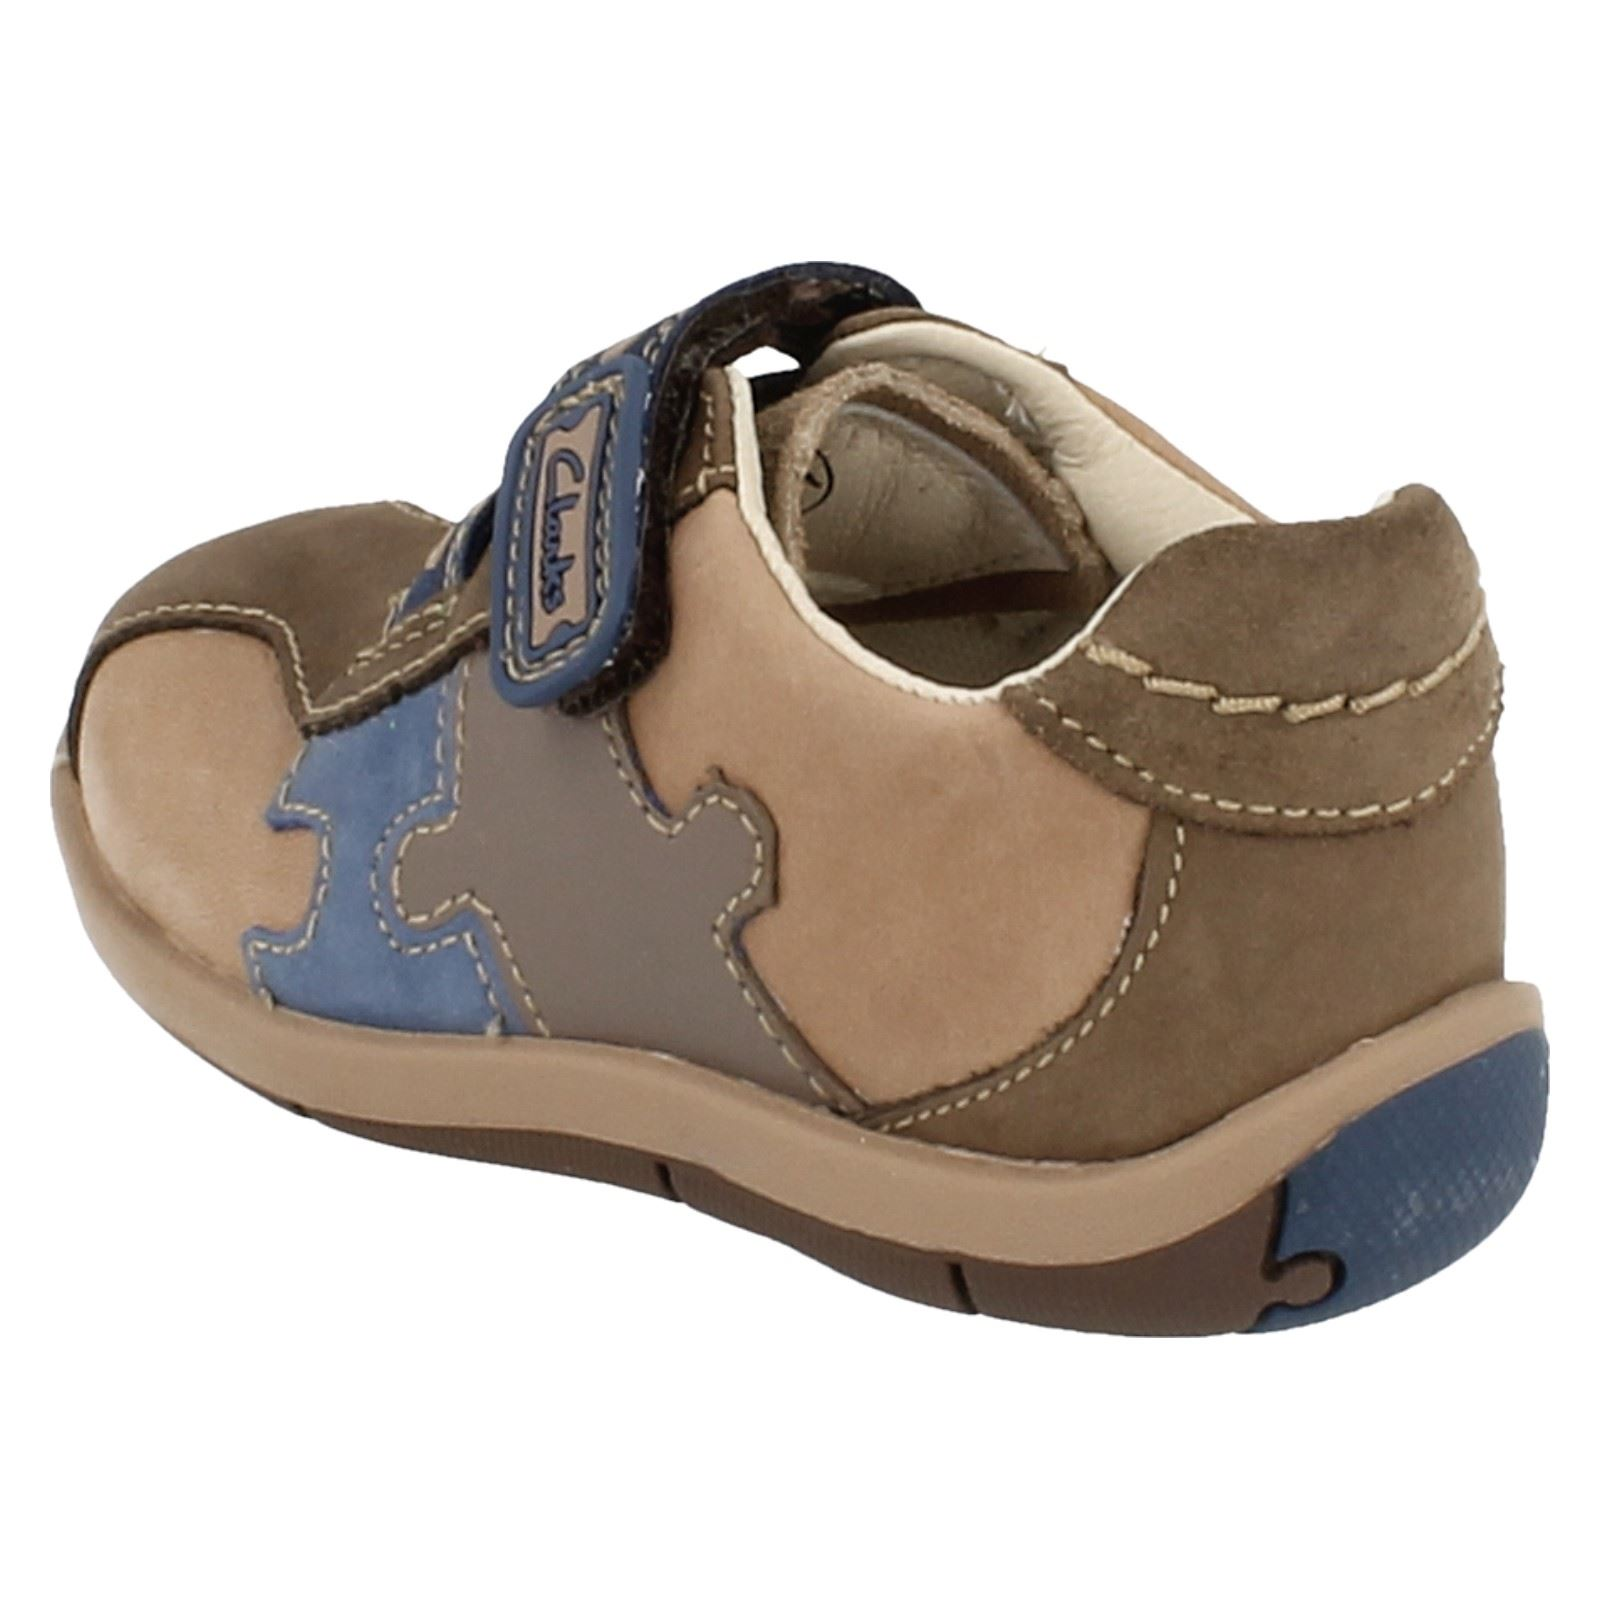 20b3d71eecee4 Boys Clarks First Shoes - Plane Puzzle | eBay